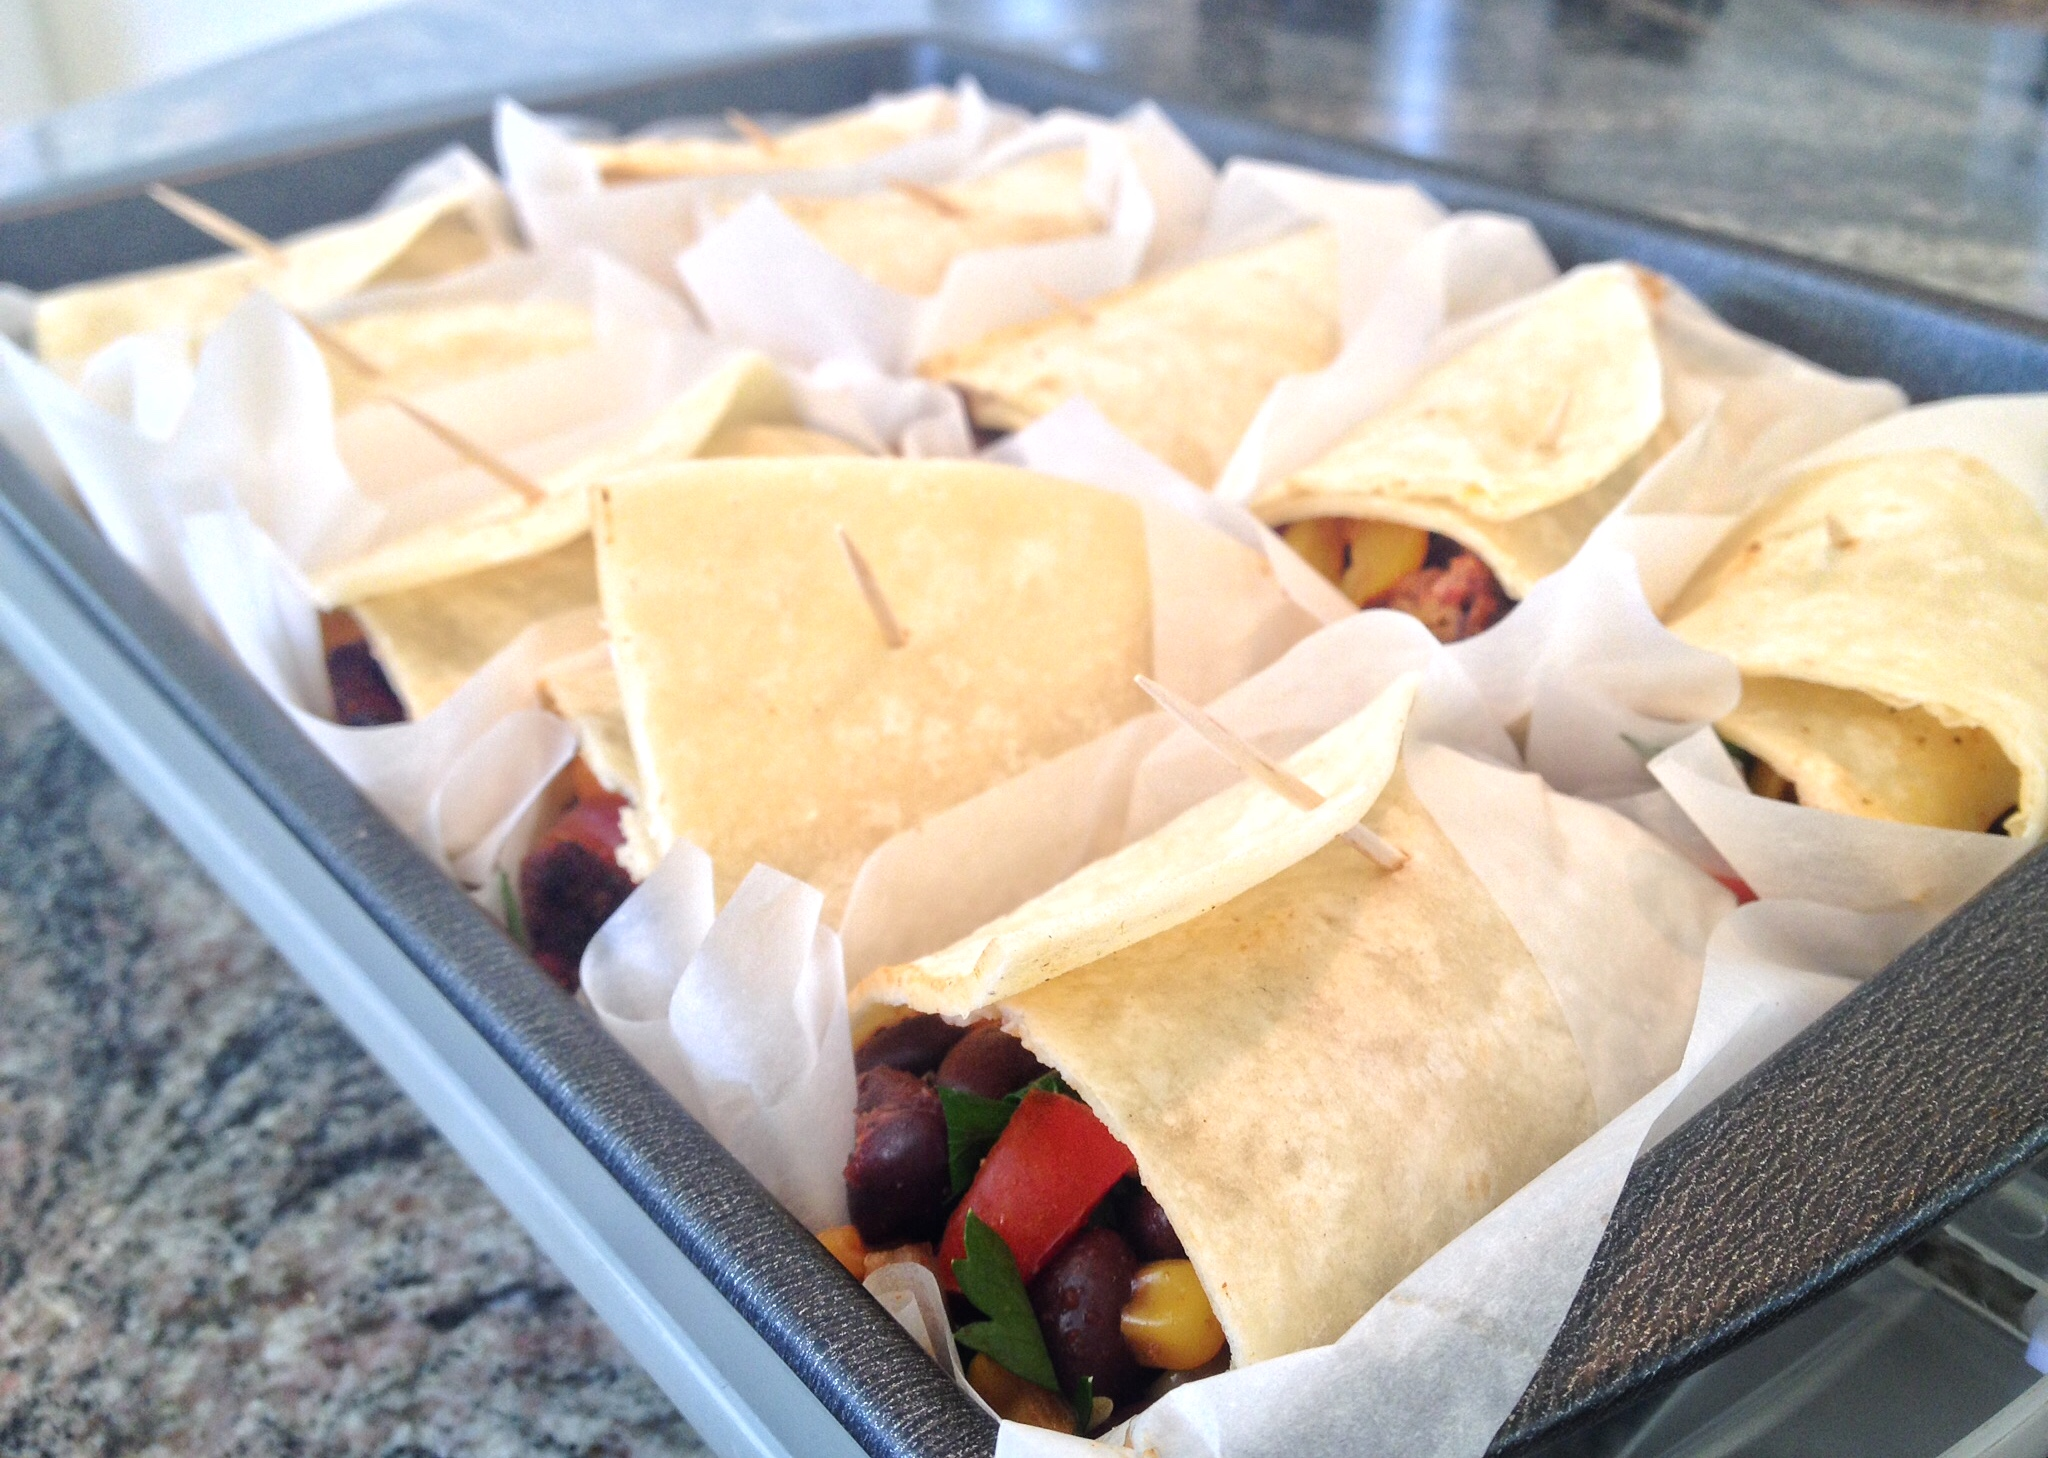 Fajitas wrapped and ready to eat! 40 minutes and fresh vegan food for my entire family for the day is done!